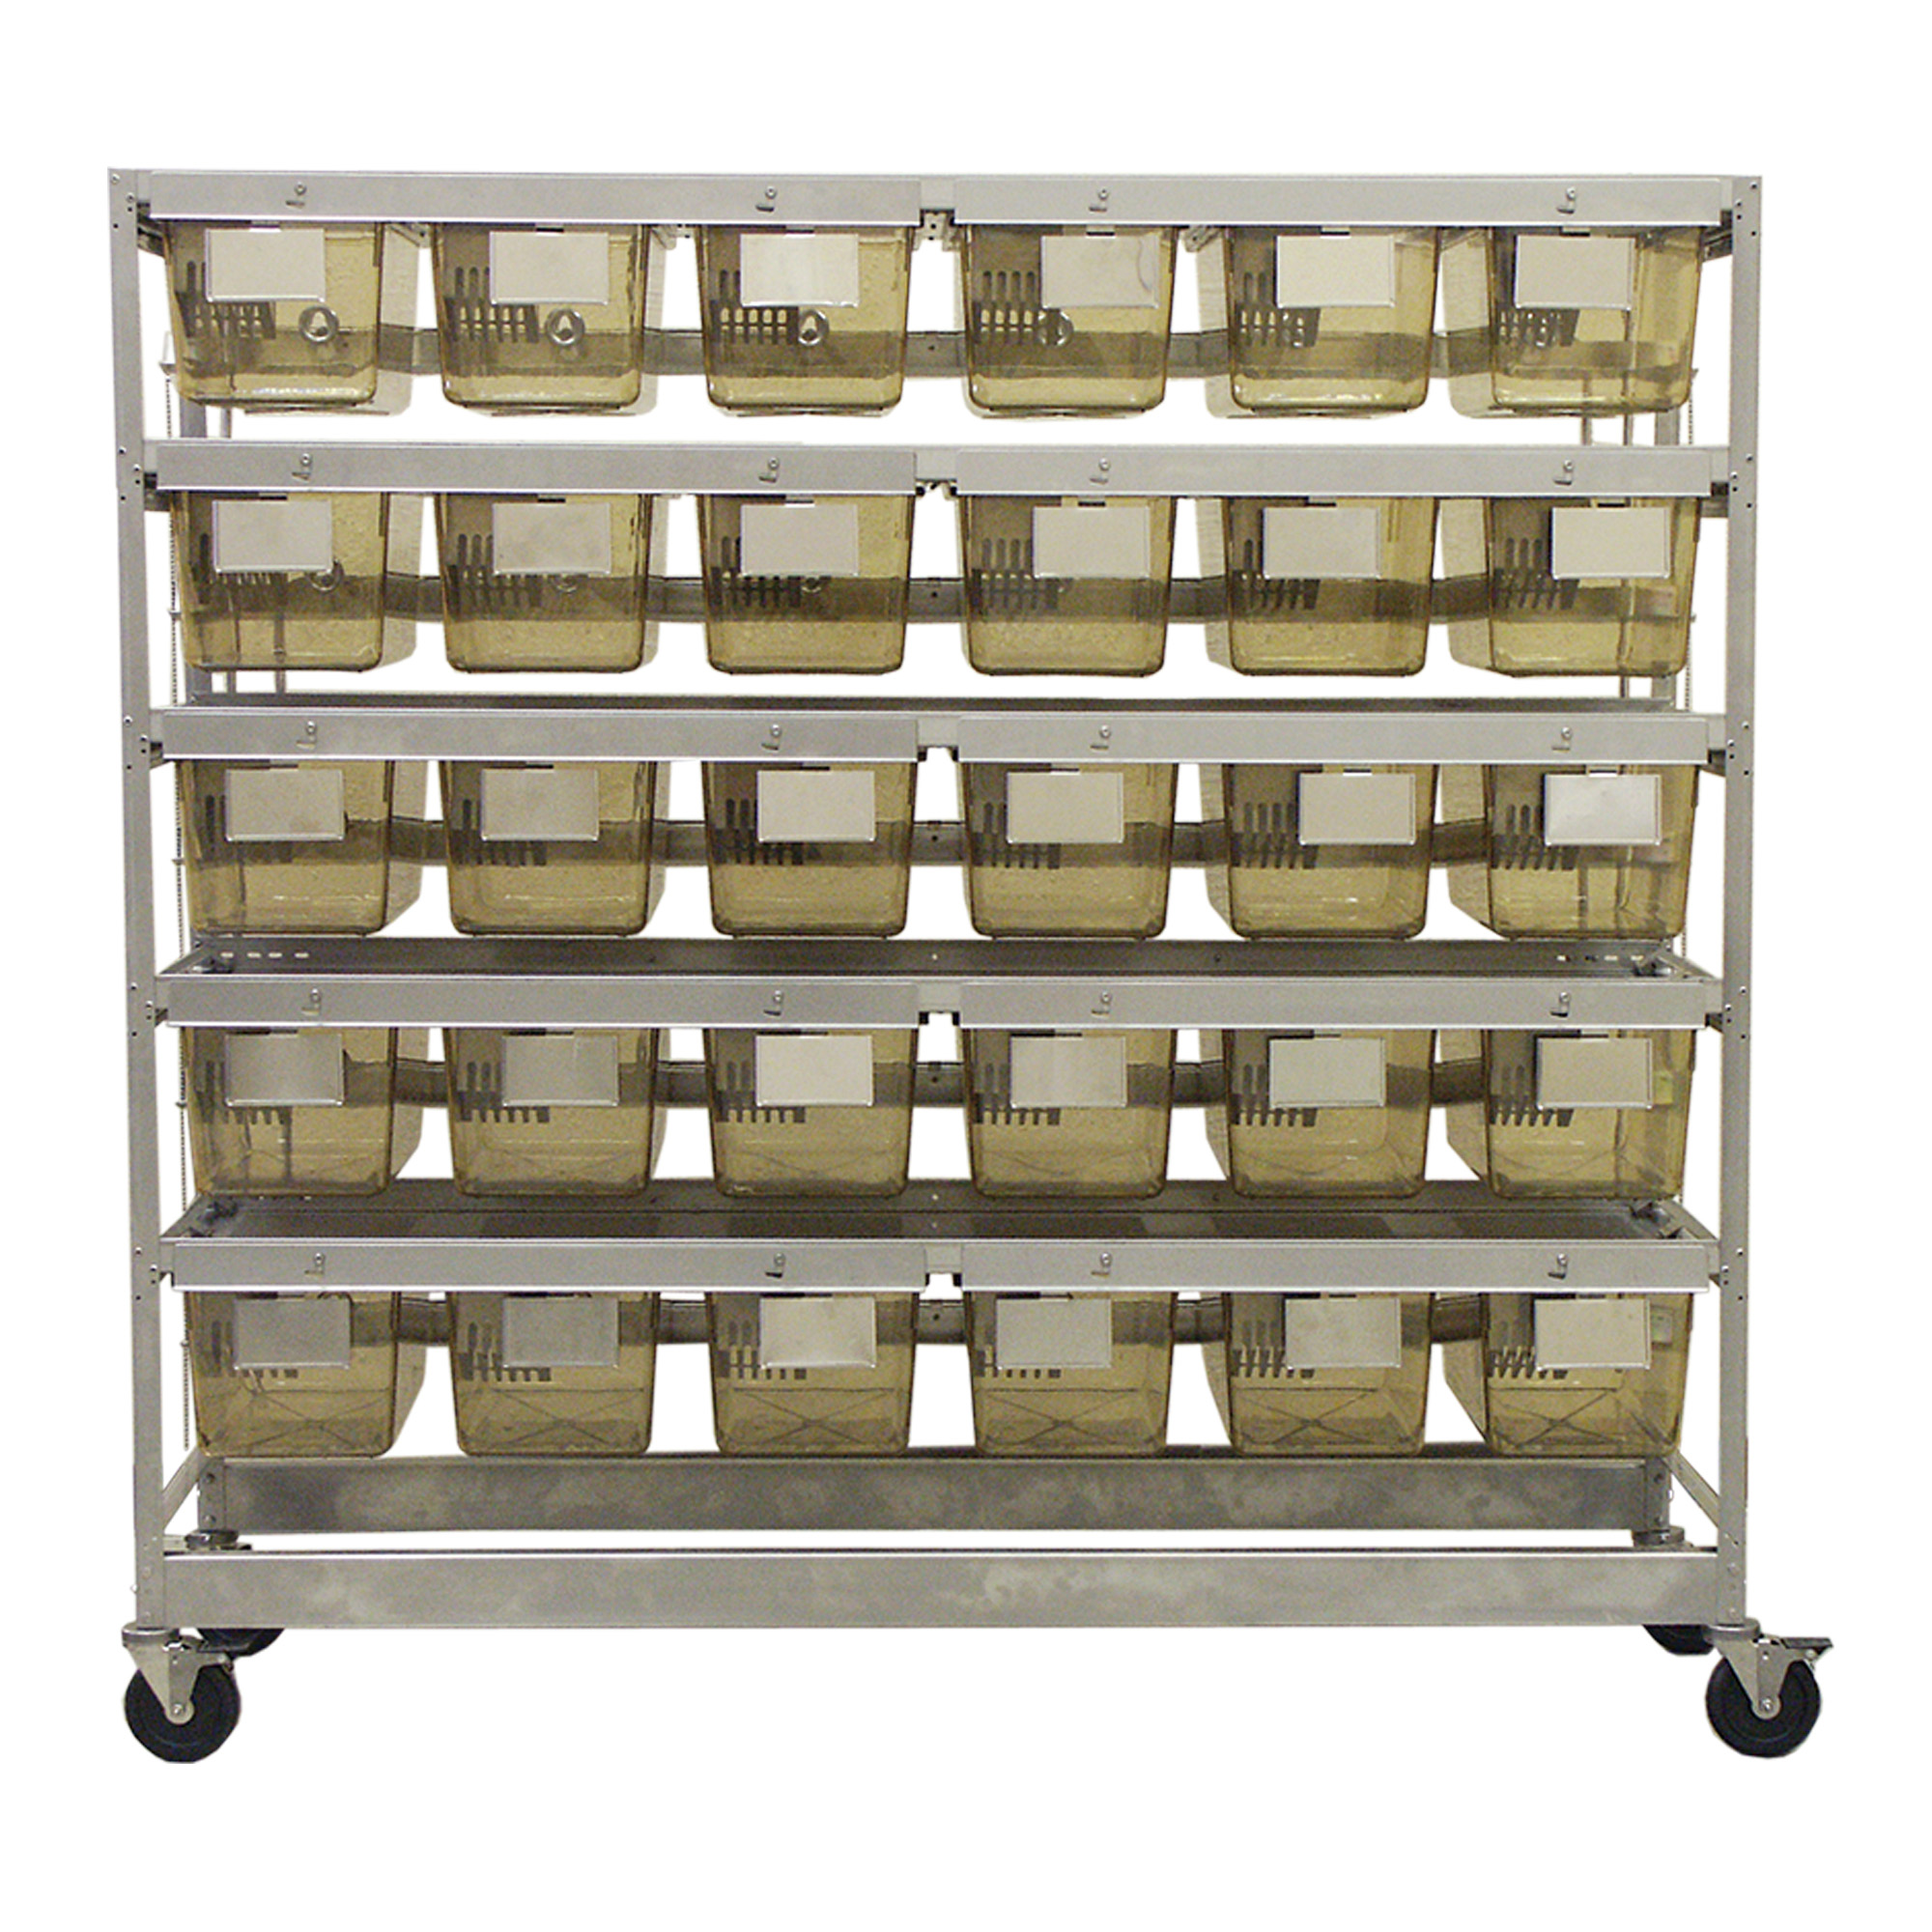 corner three modular storage system racks shelf example rack aluminum keg su shelving unit